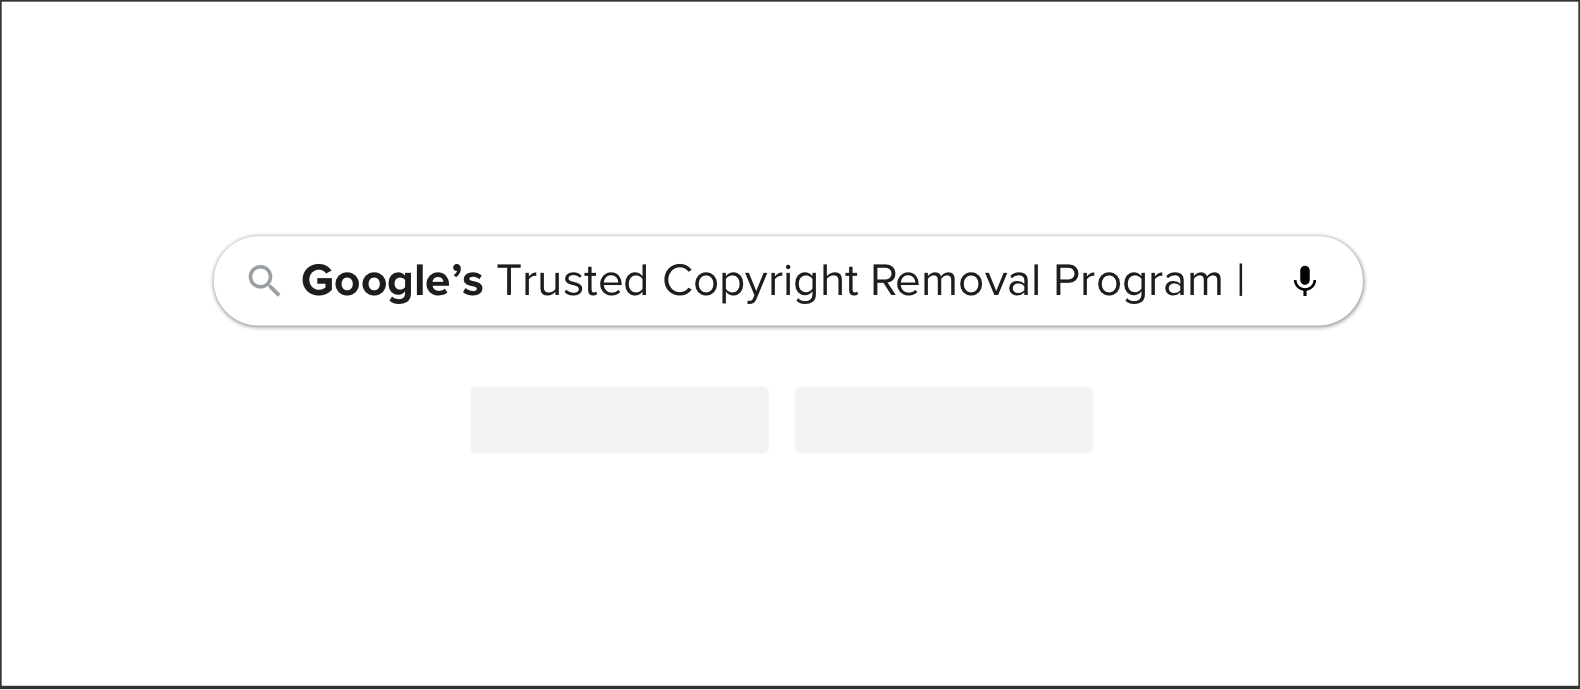 Googles trusted copyright removal program